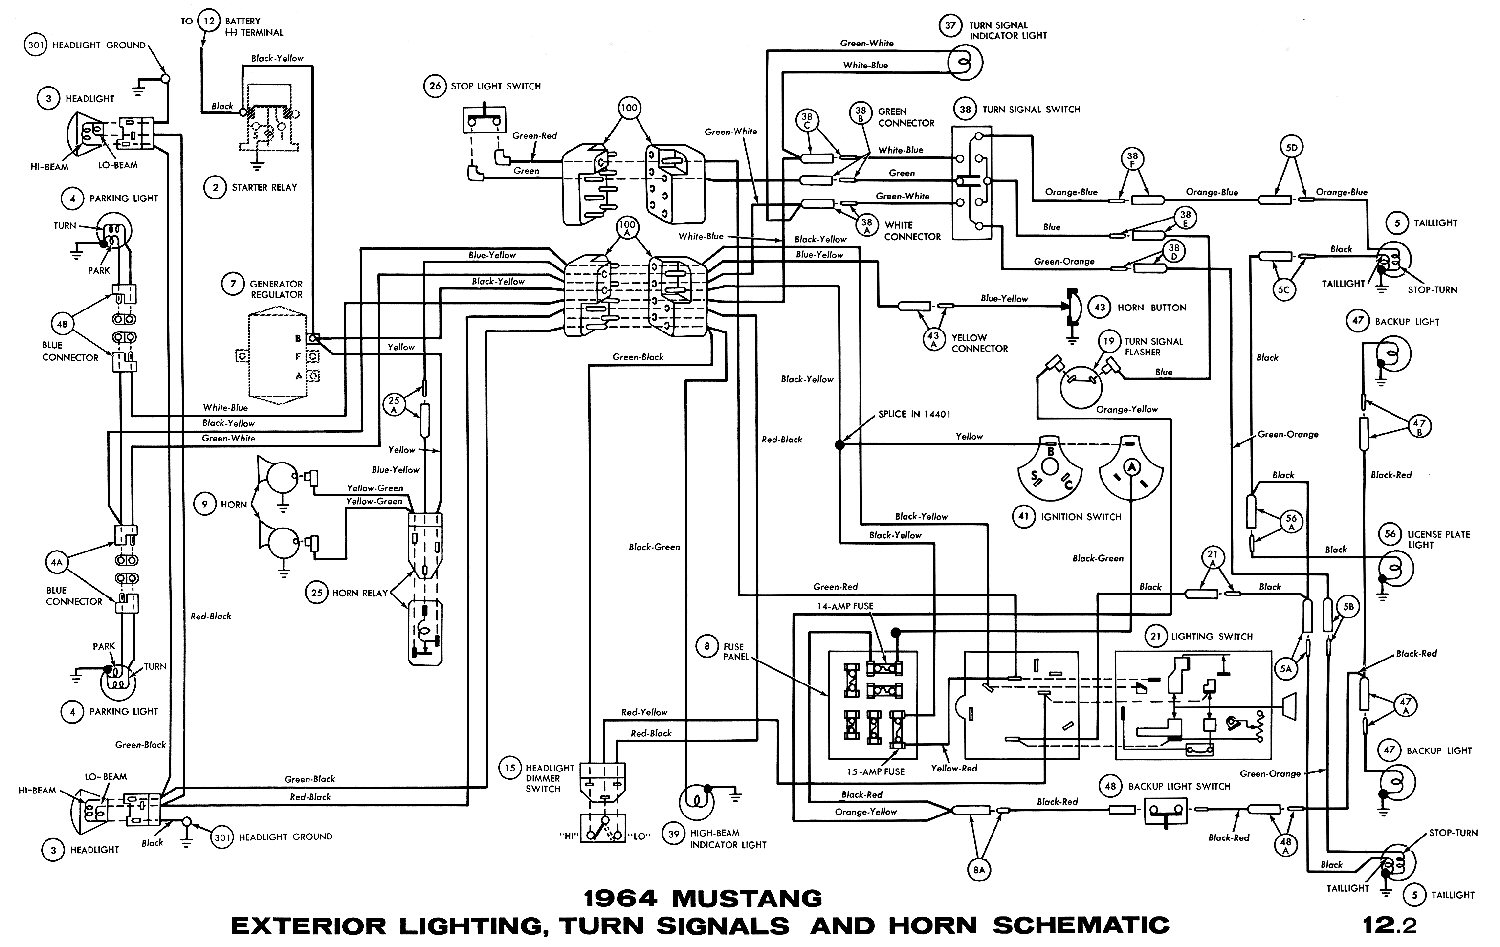 1964i 1964 mustang wiring diagrams average joe restoration 67 cougar turn signal wiring diagram at gsmx.co